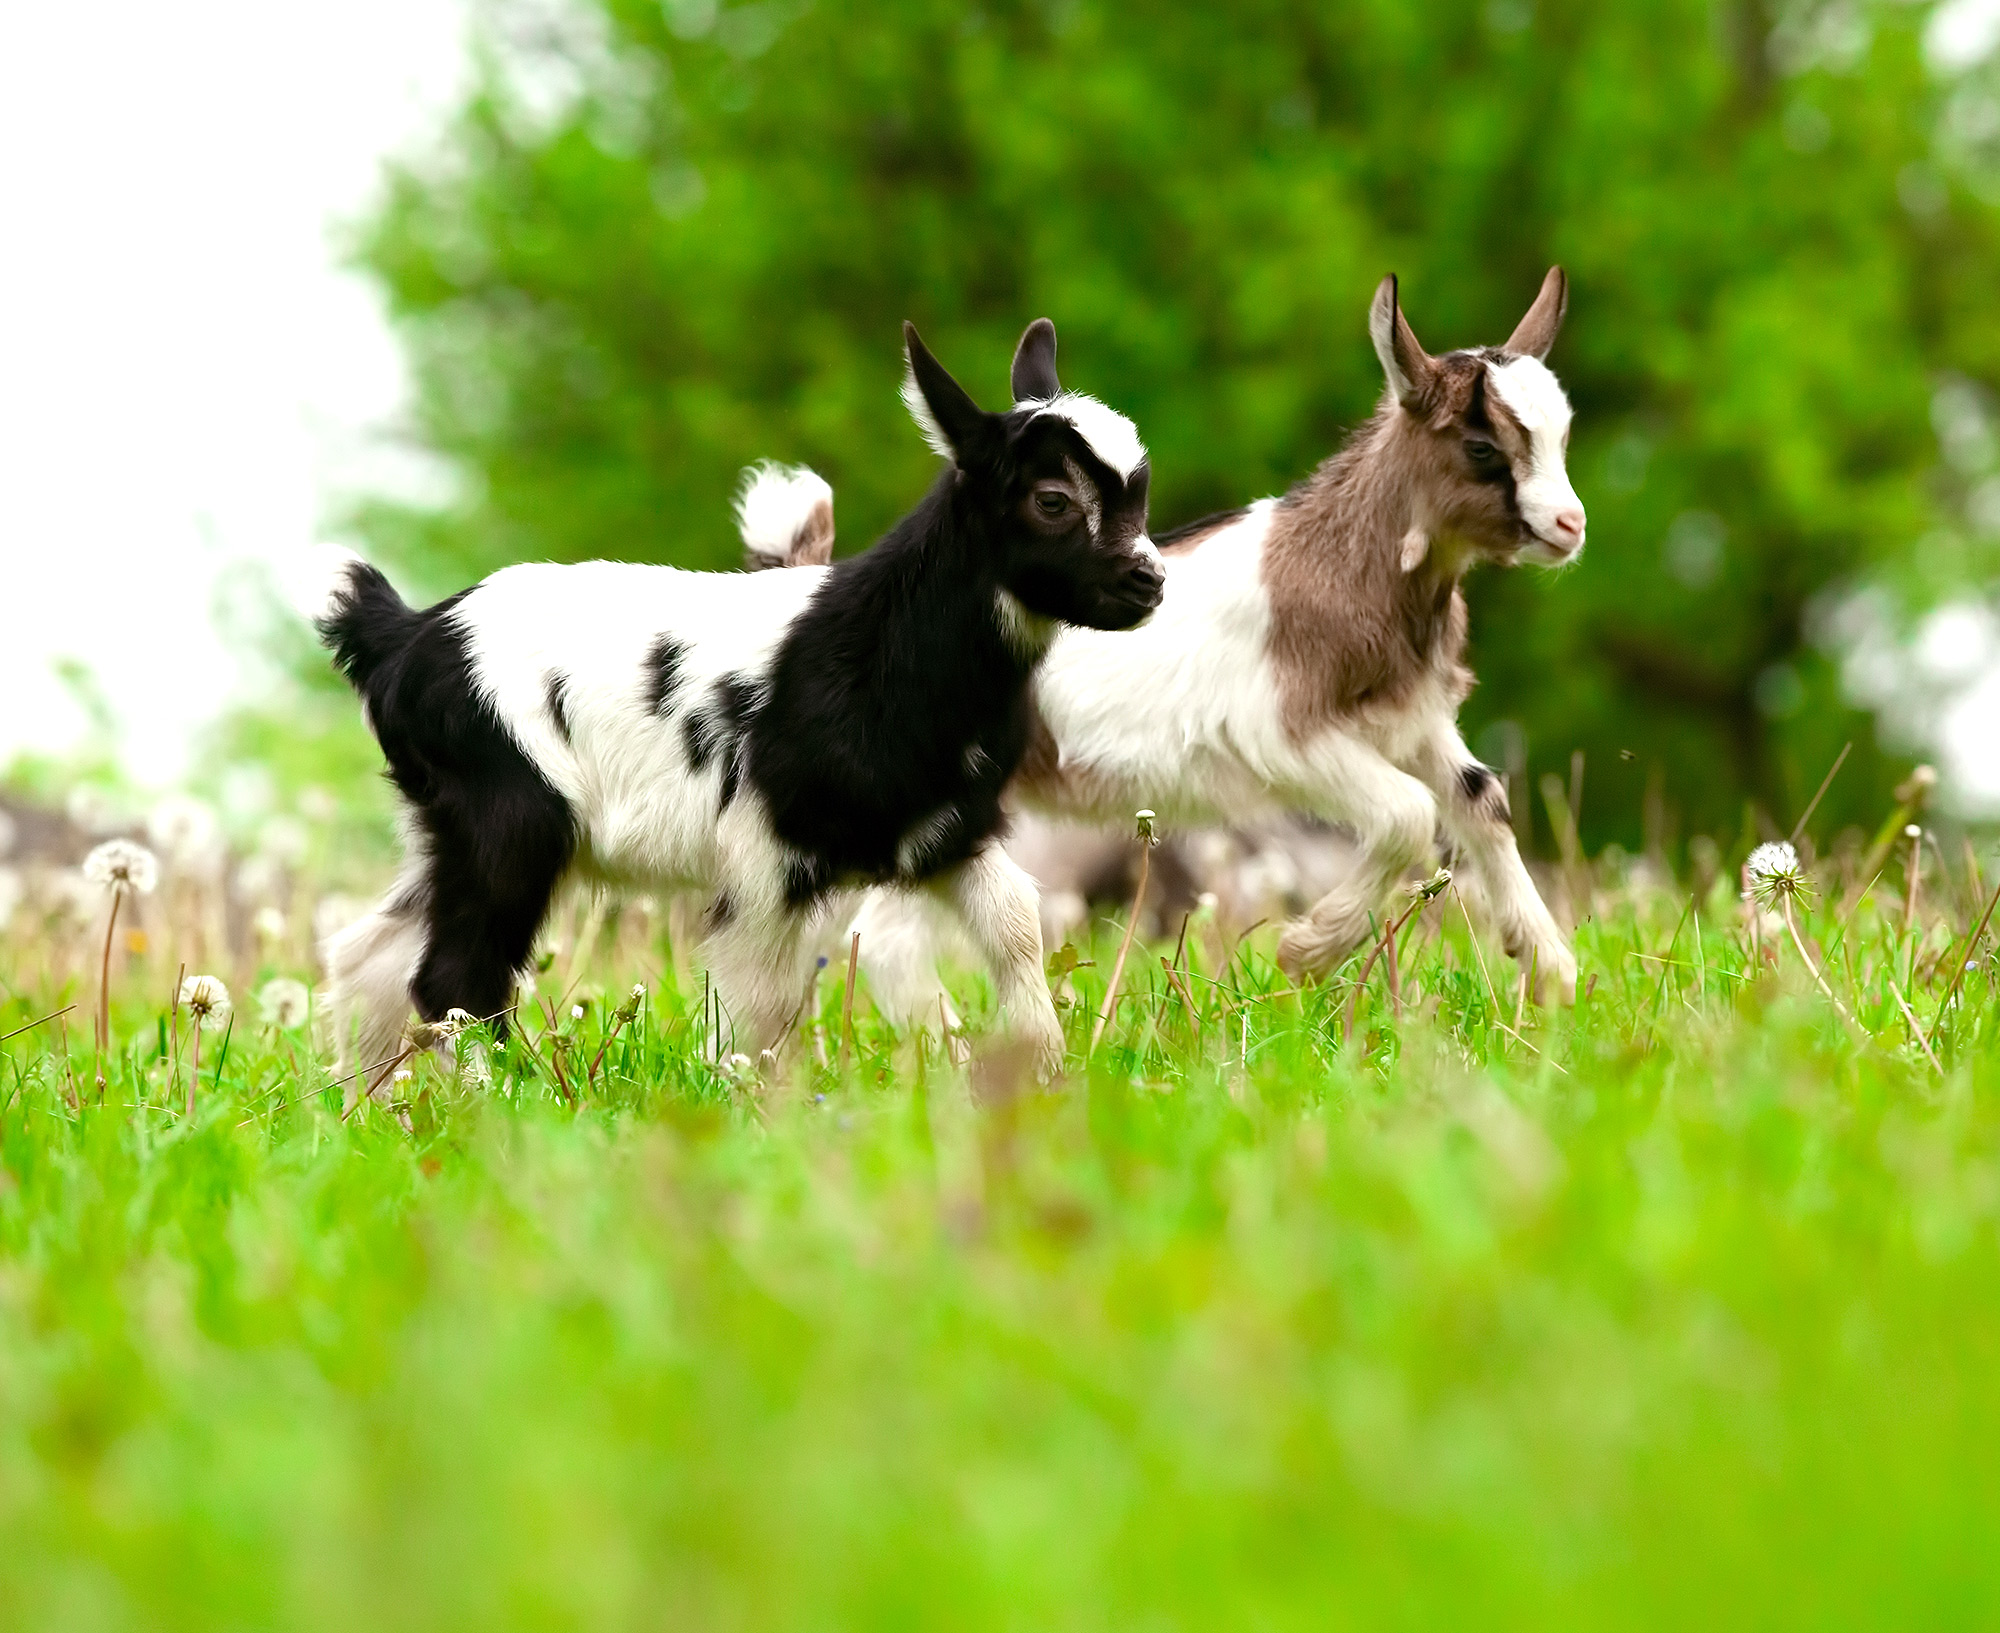 Playful young goats